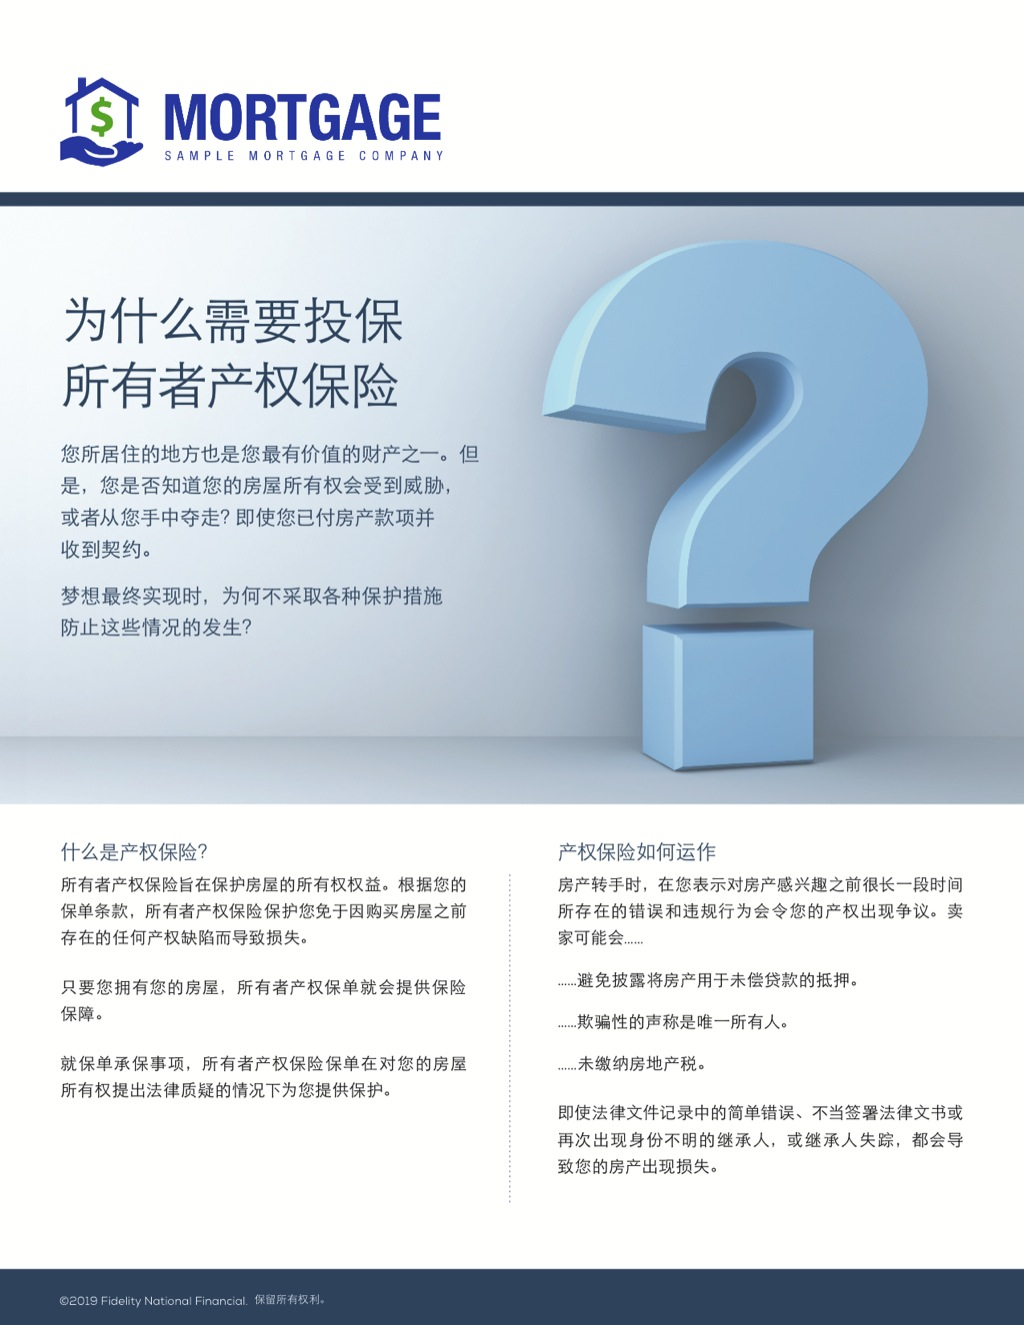 Corefact Why You Need Owner's Title Insurance - Mandarin